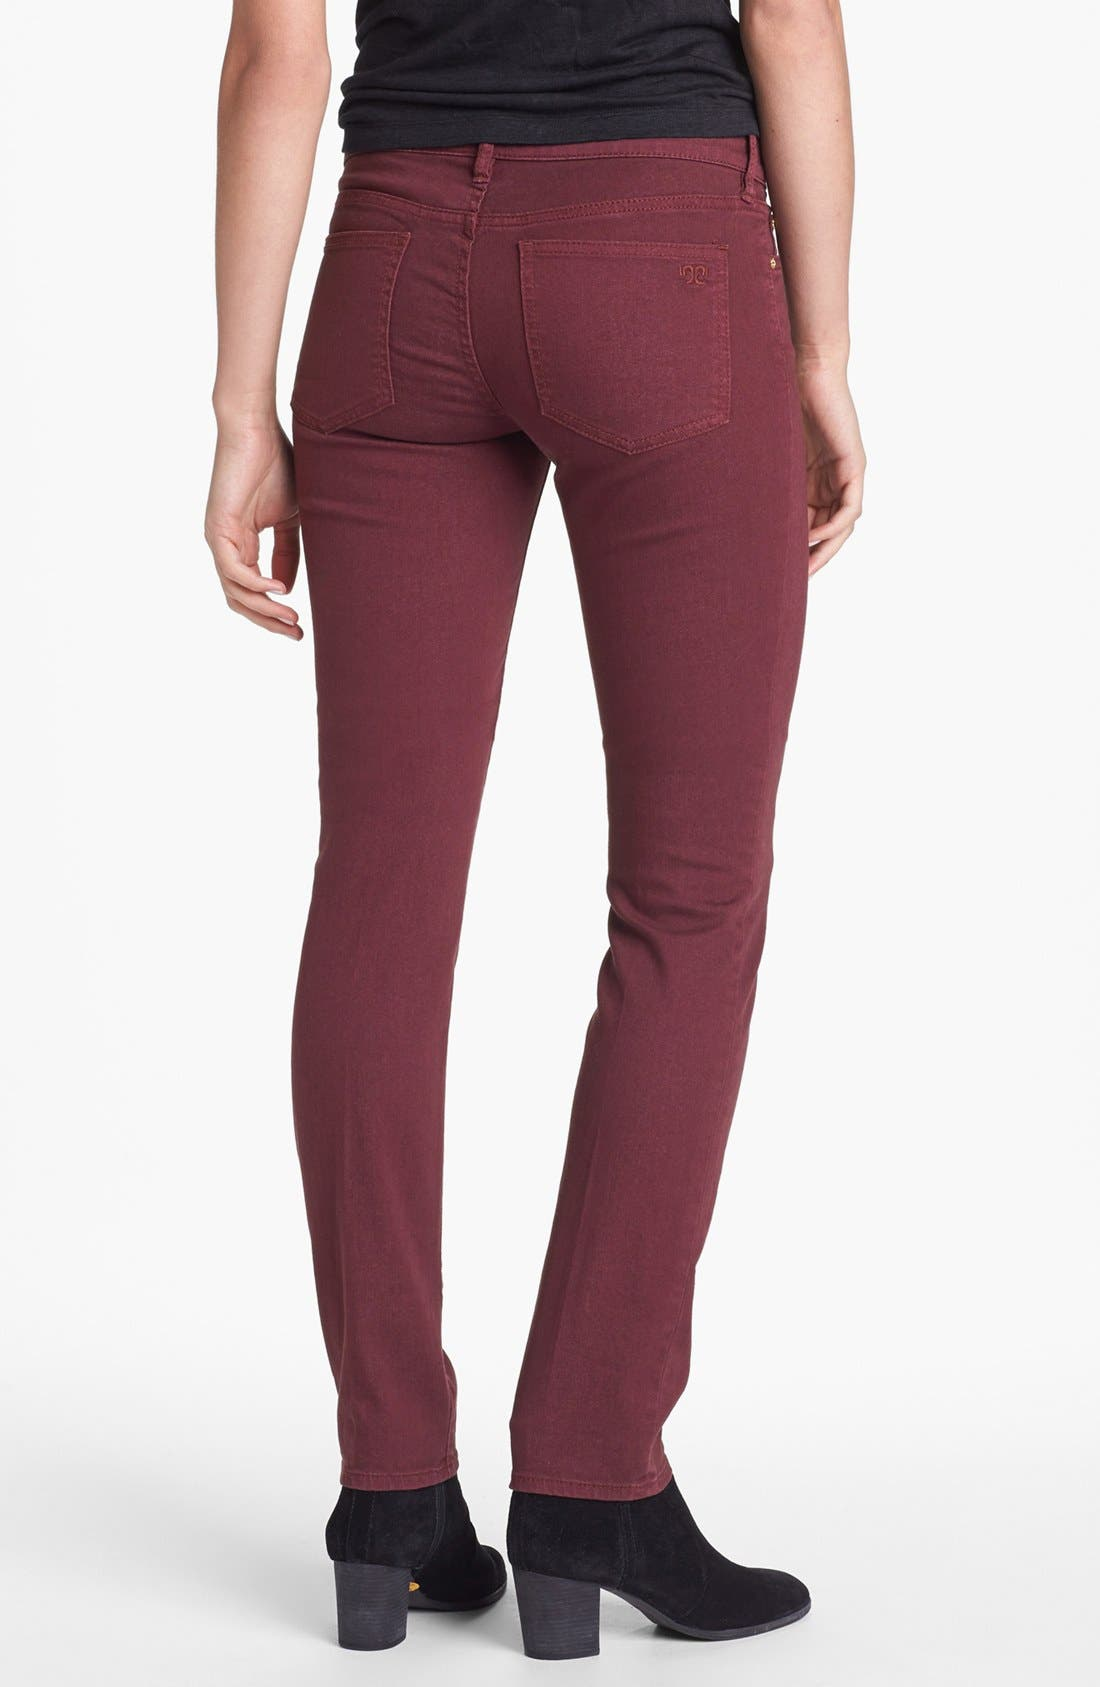 Alternate Image 2  - Tory Burch 'Ivy' Colored Super Skinny Jeans (Dark Plum)